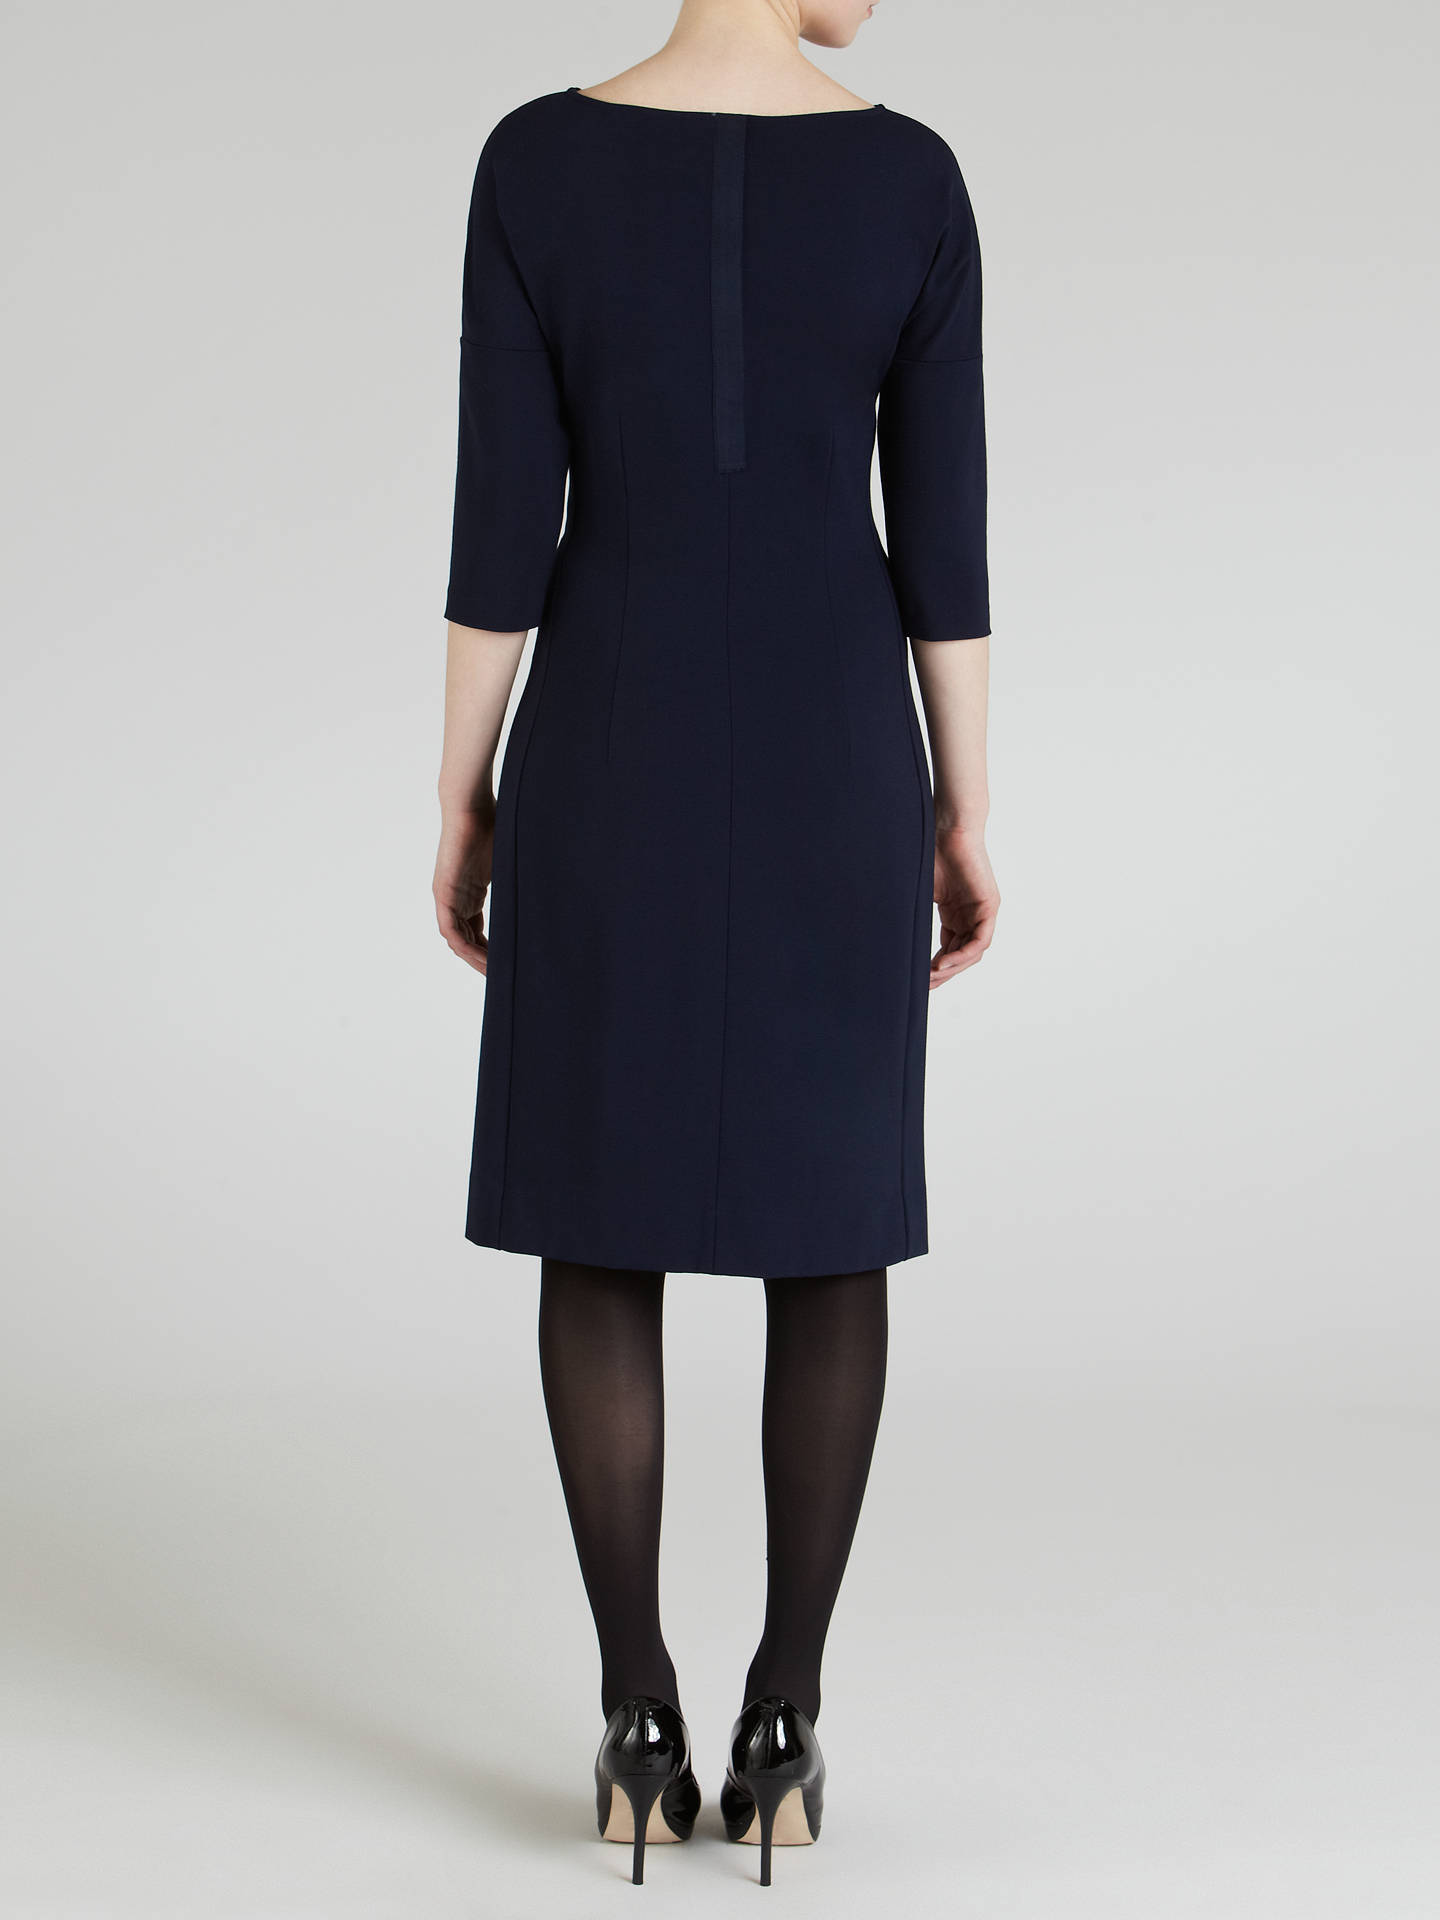 Buy Winser London Miracle Dress, Midnight Navy, 6 Online at johnlewis.com